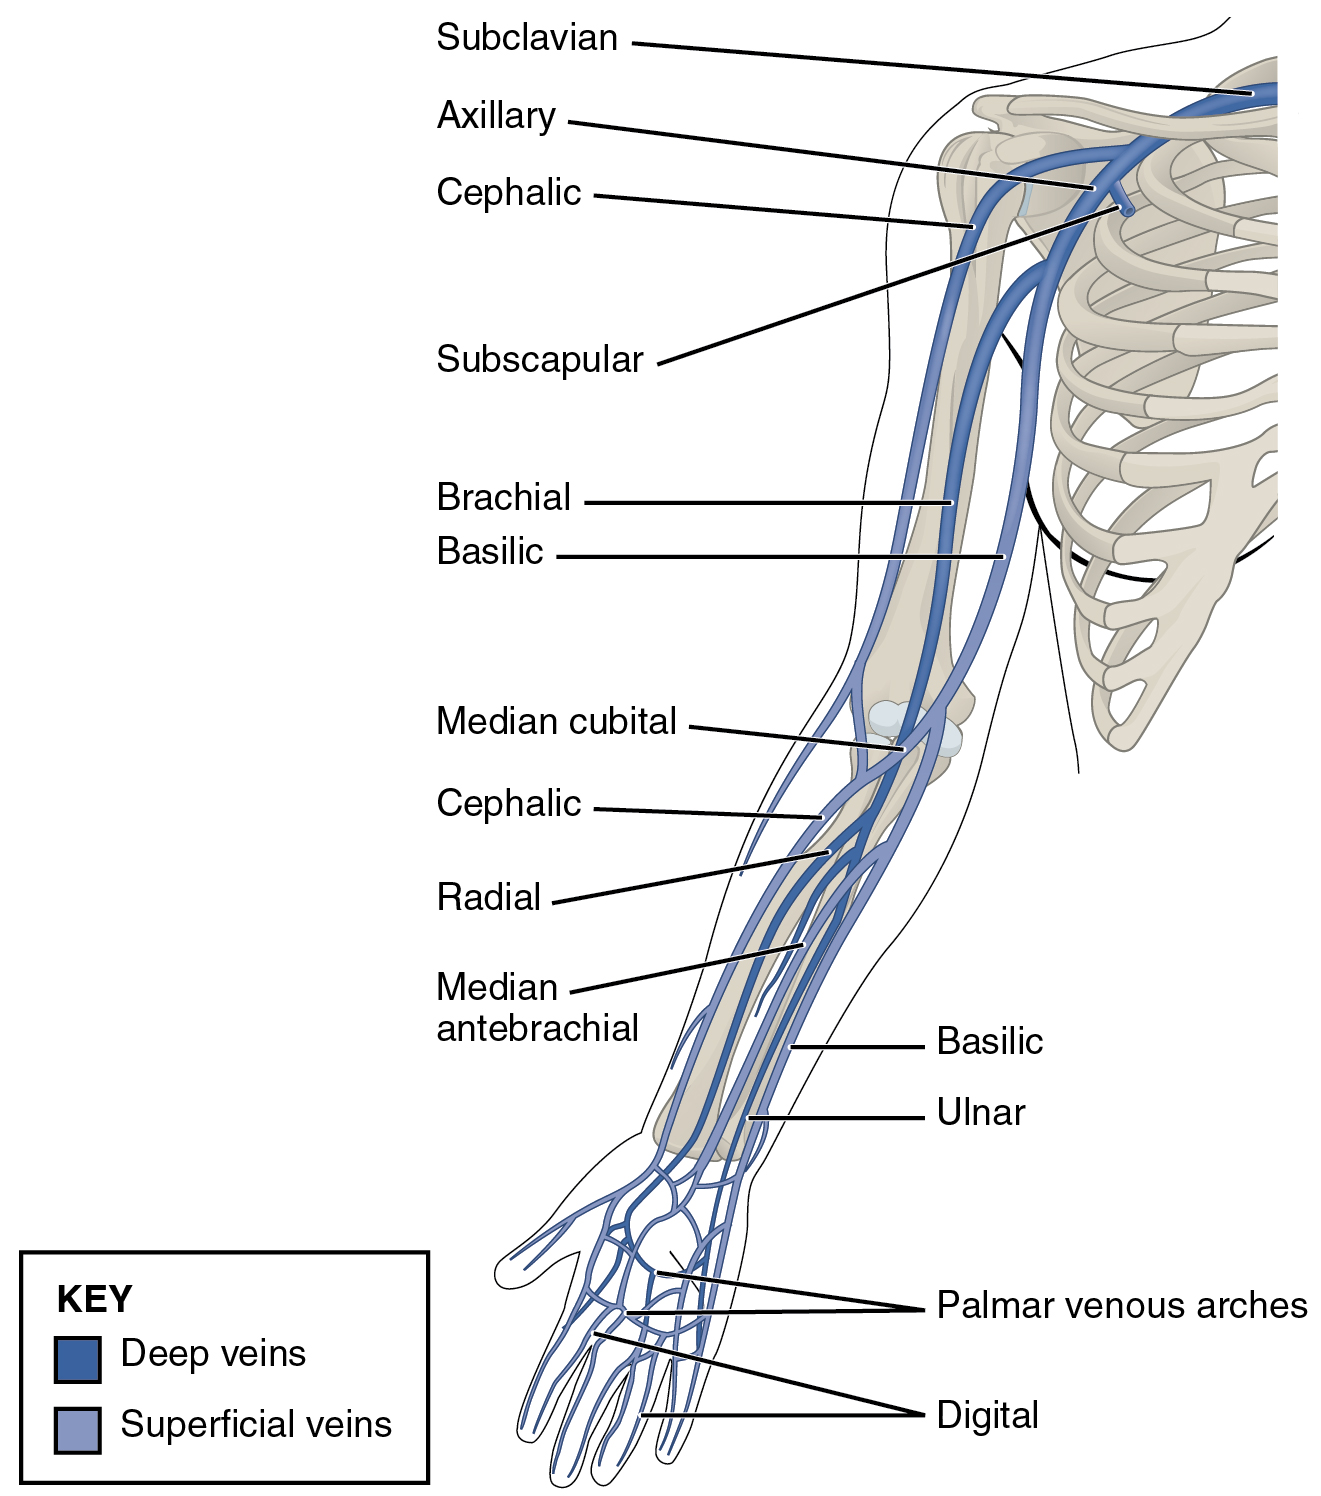 This diagram shows the veins present in the upper limb.